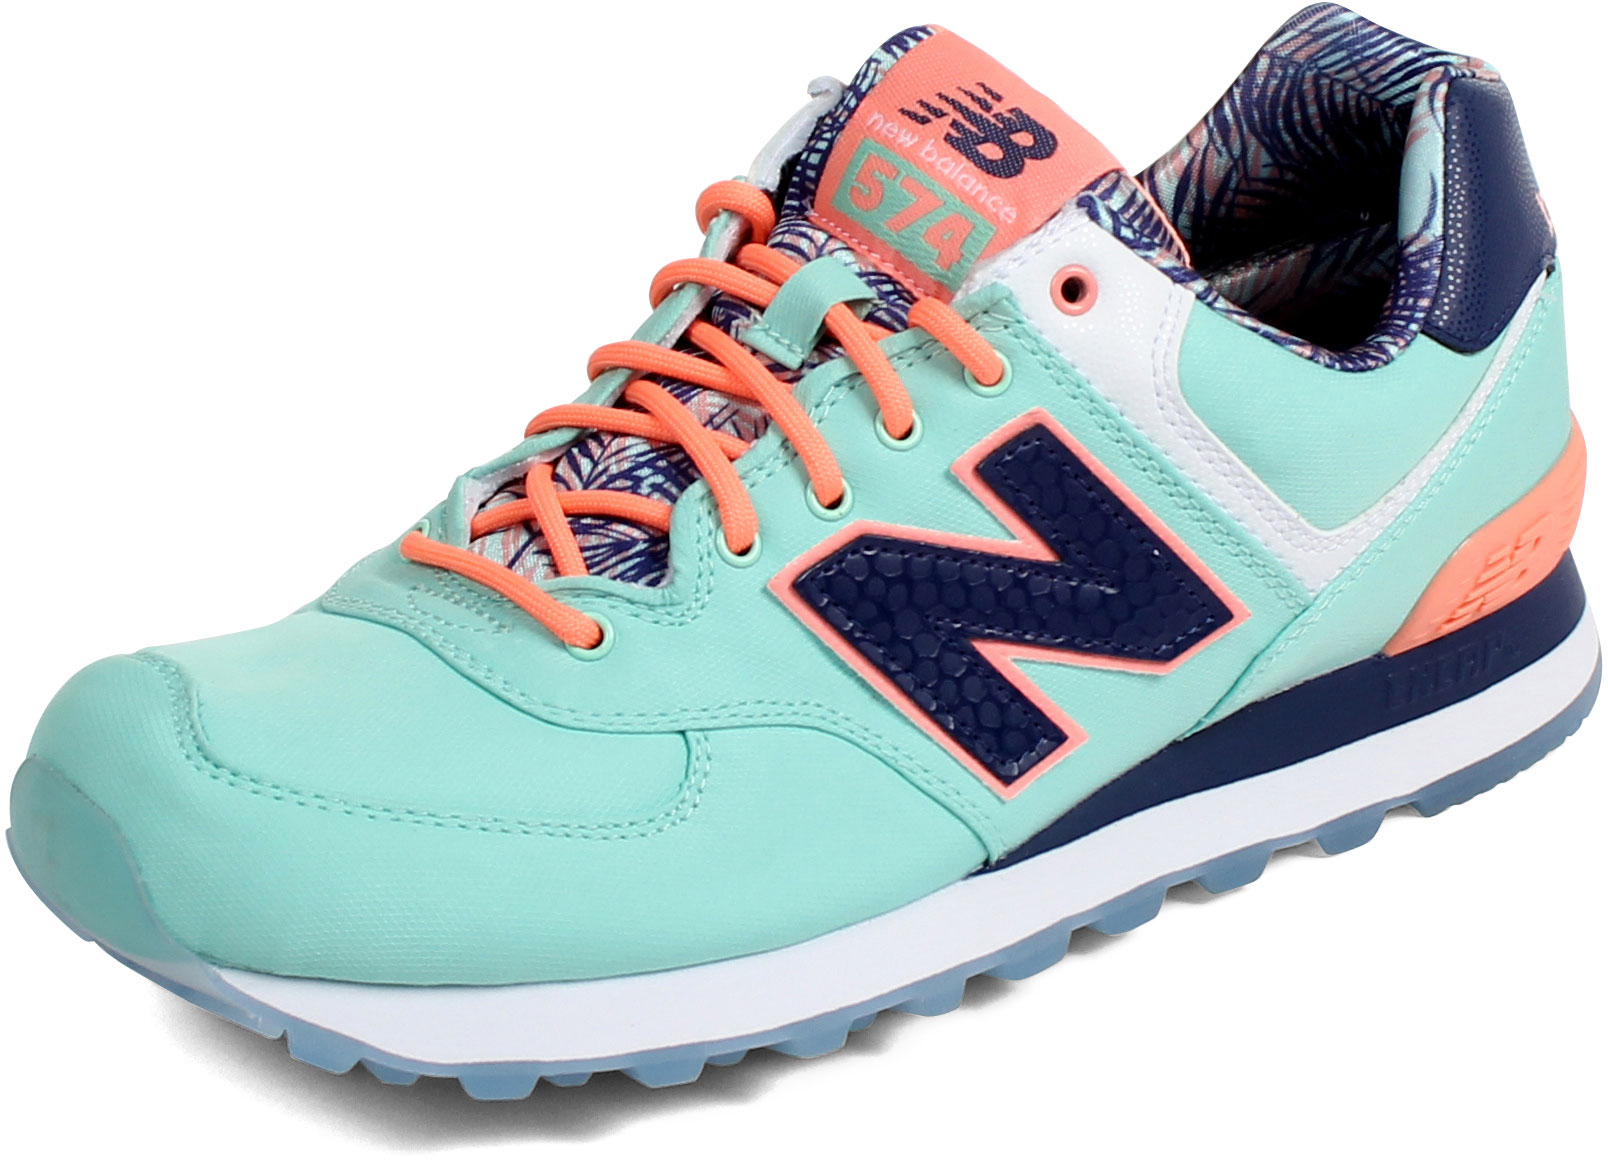 new arrival 70bb8 556b0 New Balance - Womens 574 Island Shoes